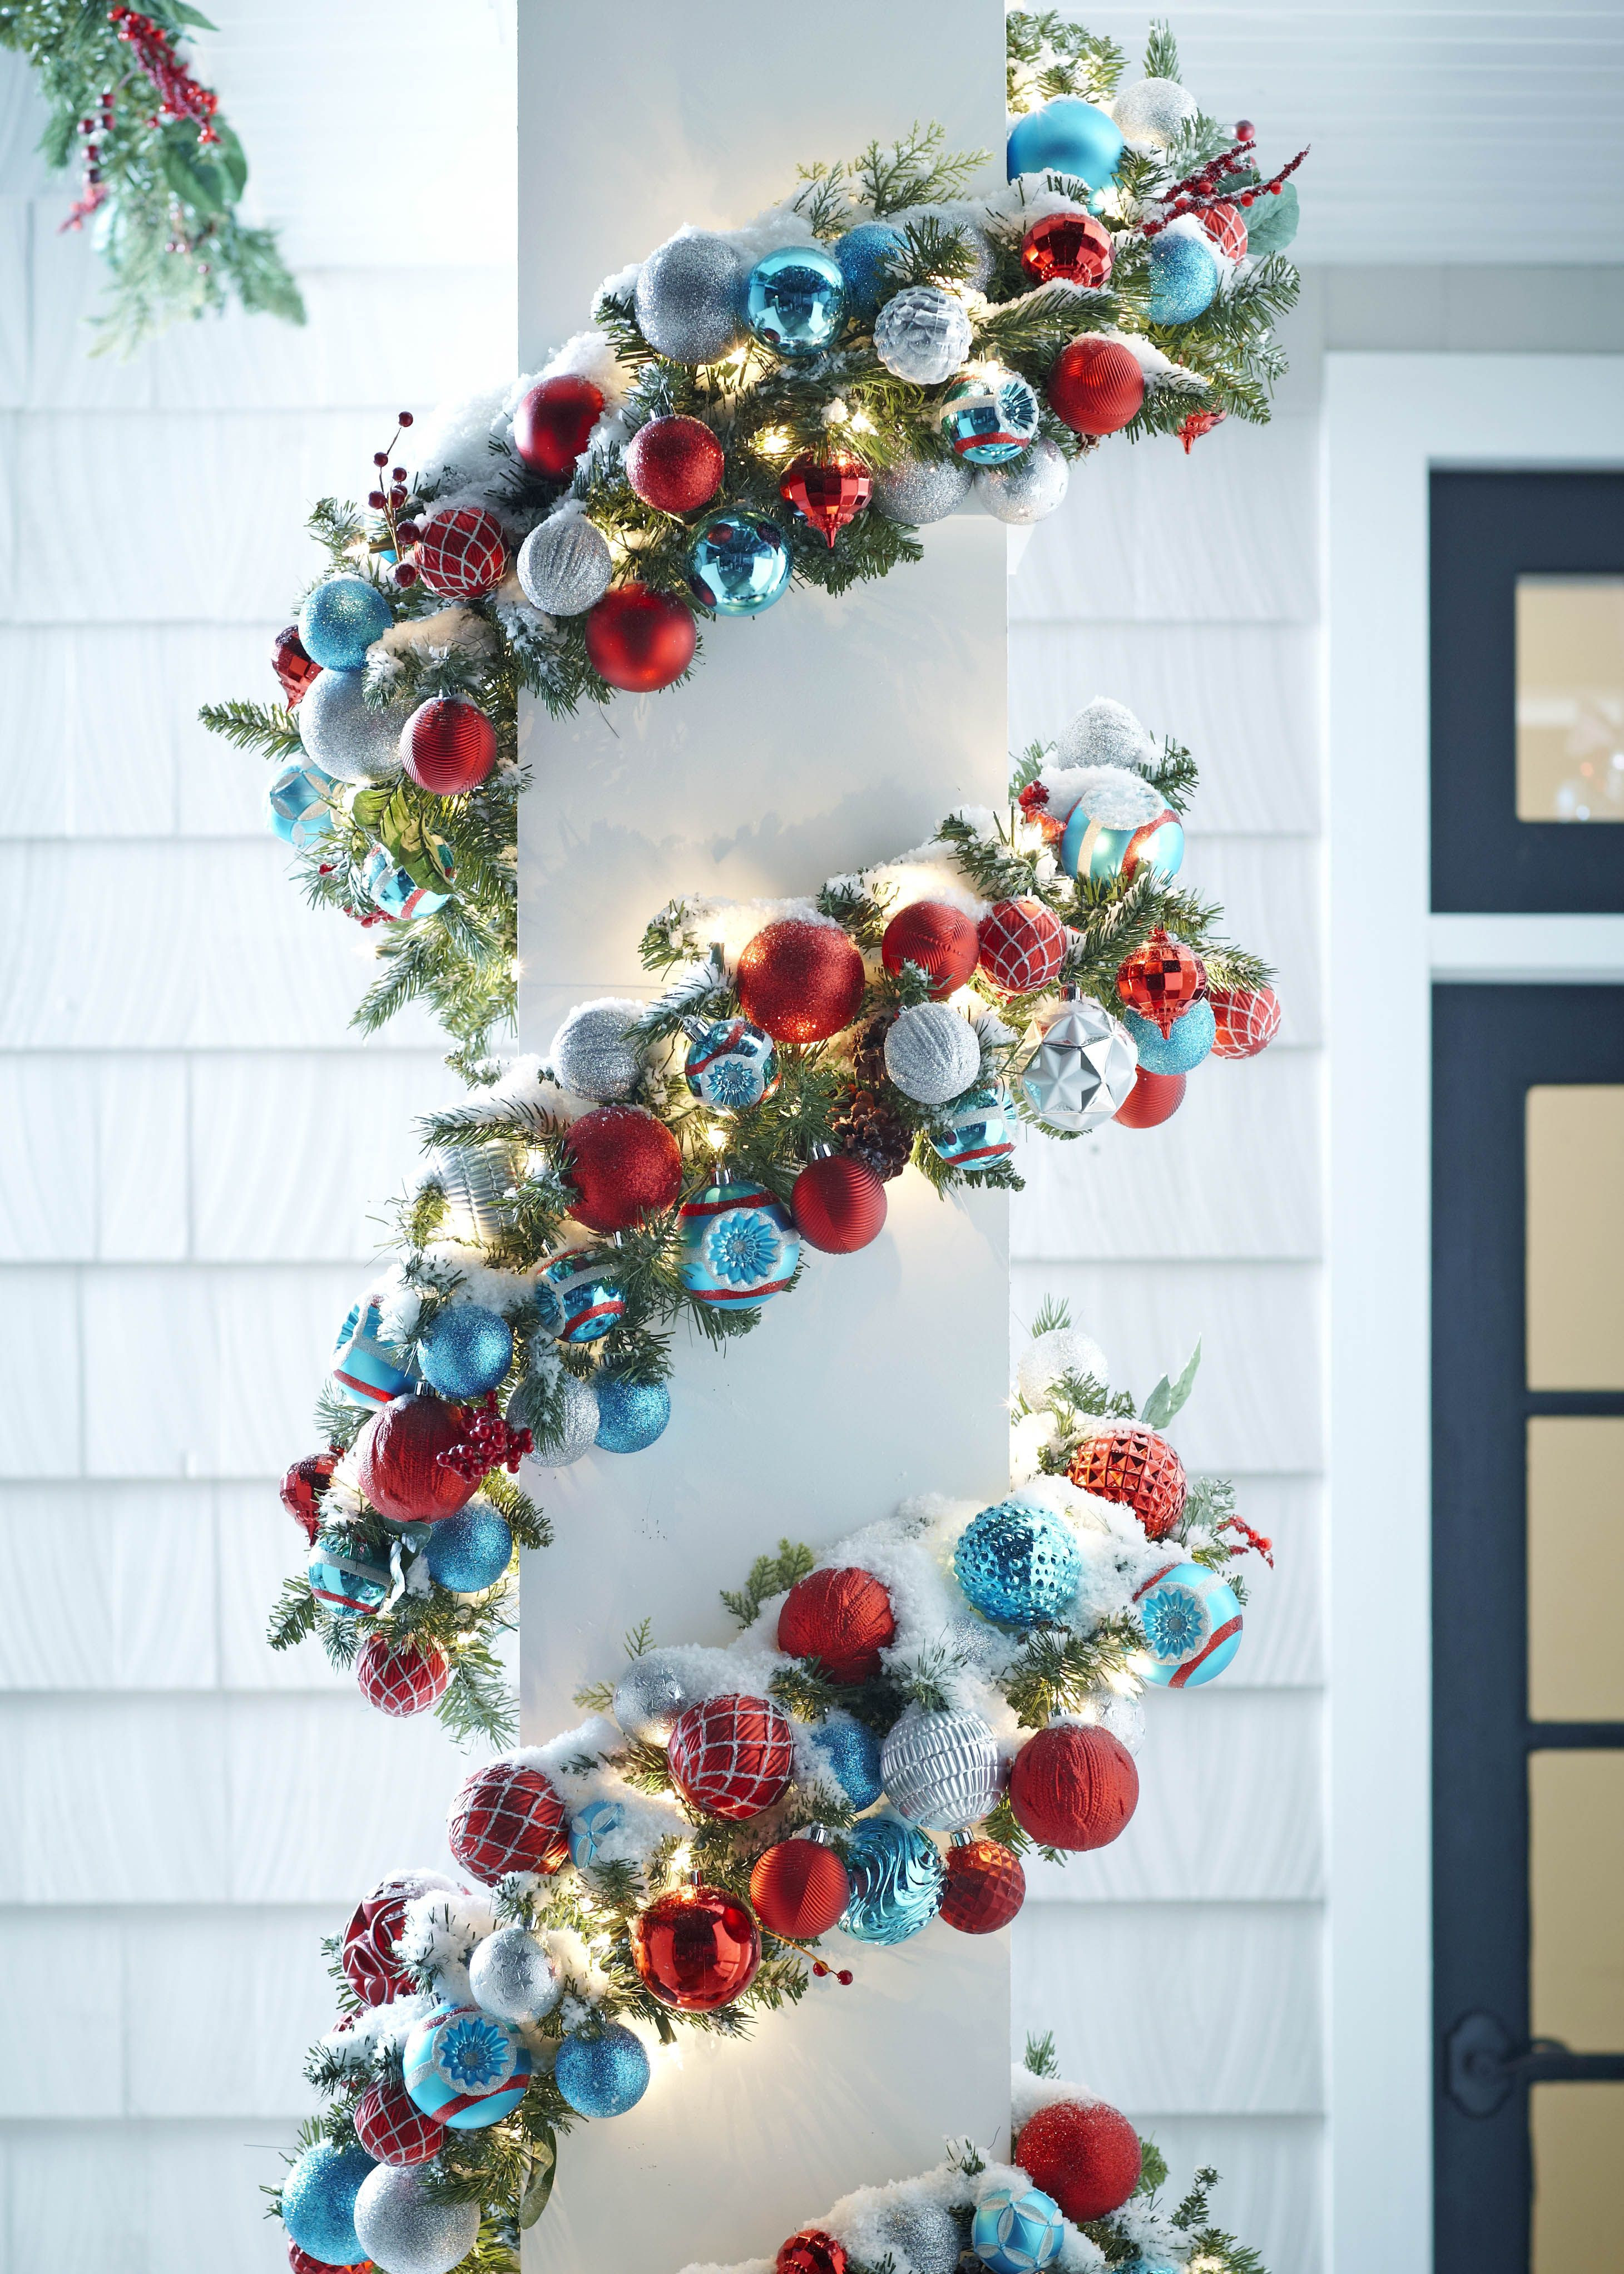 DIY Christmas Garland Ideas  Add shatterproof ornaments with wire to pre lit garland